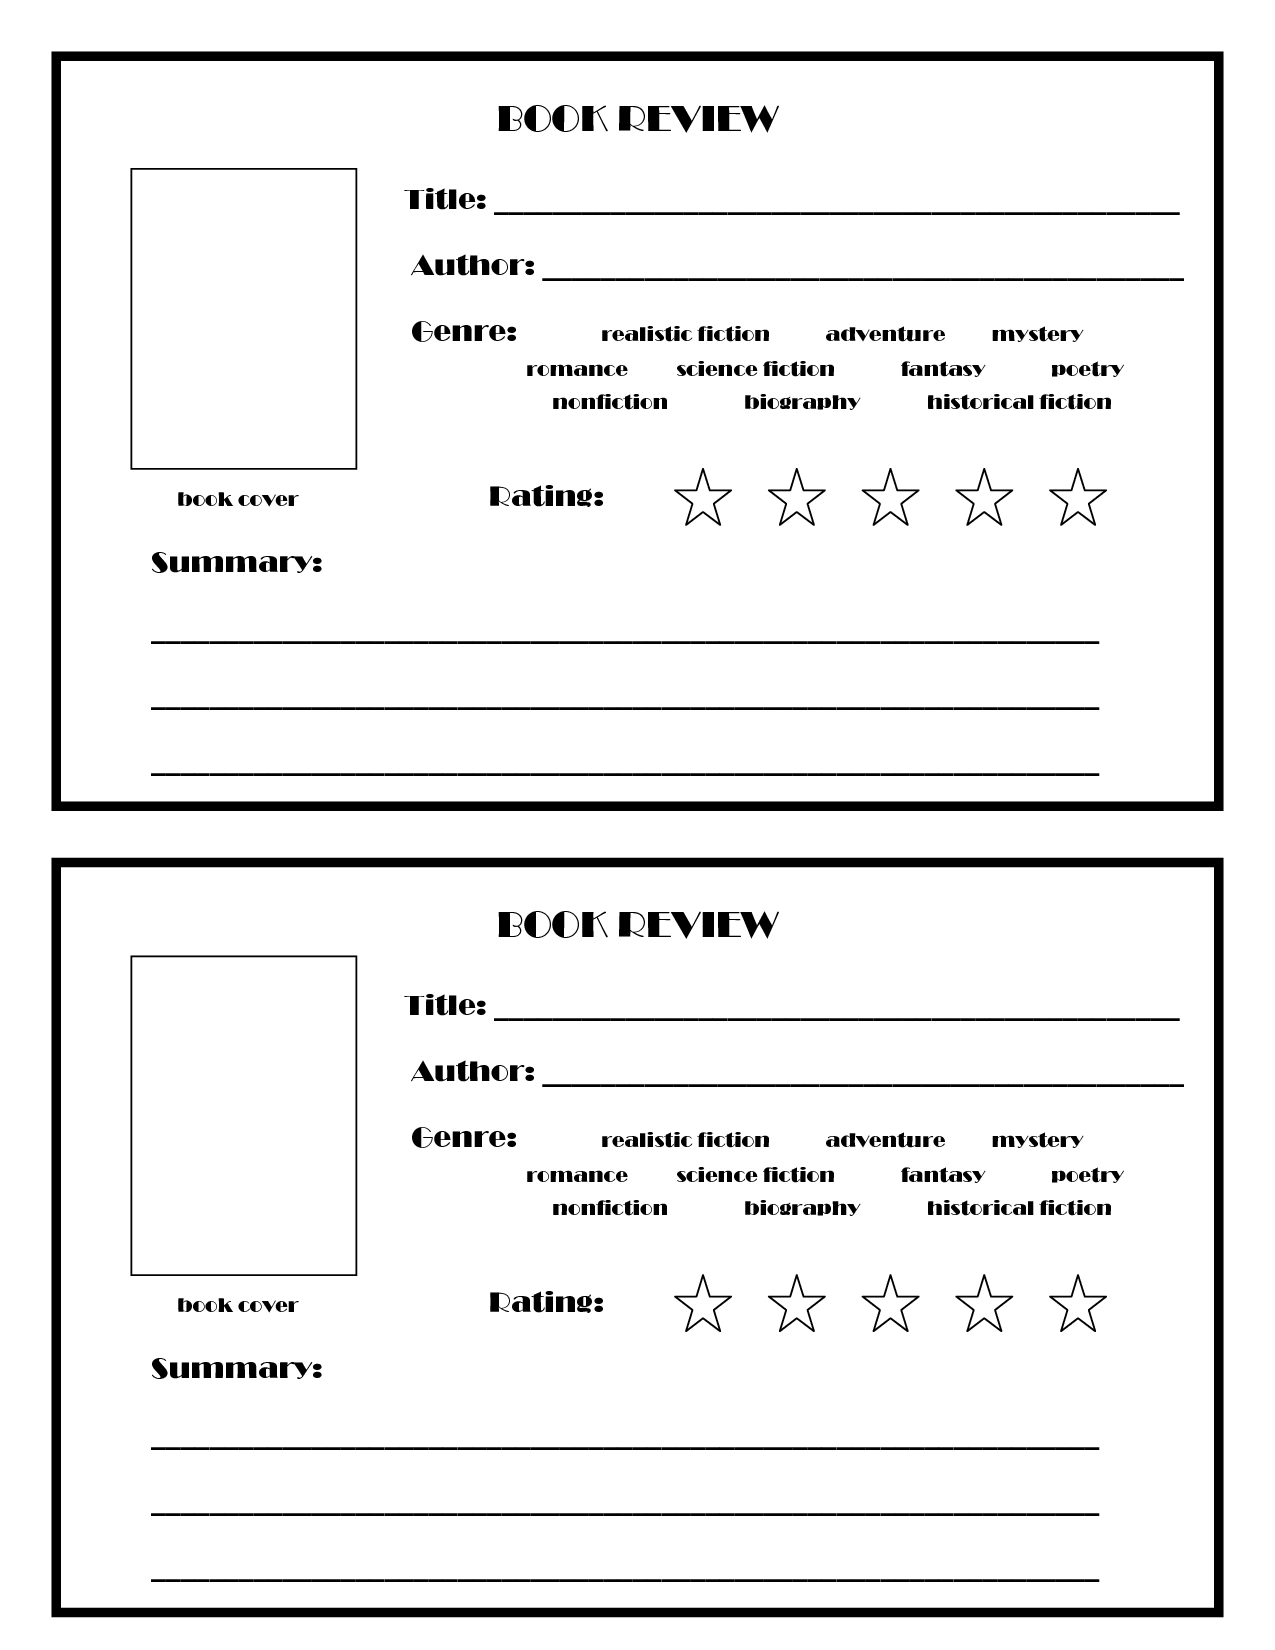 Book Review Template. Go with picture for board and can change ...